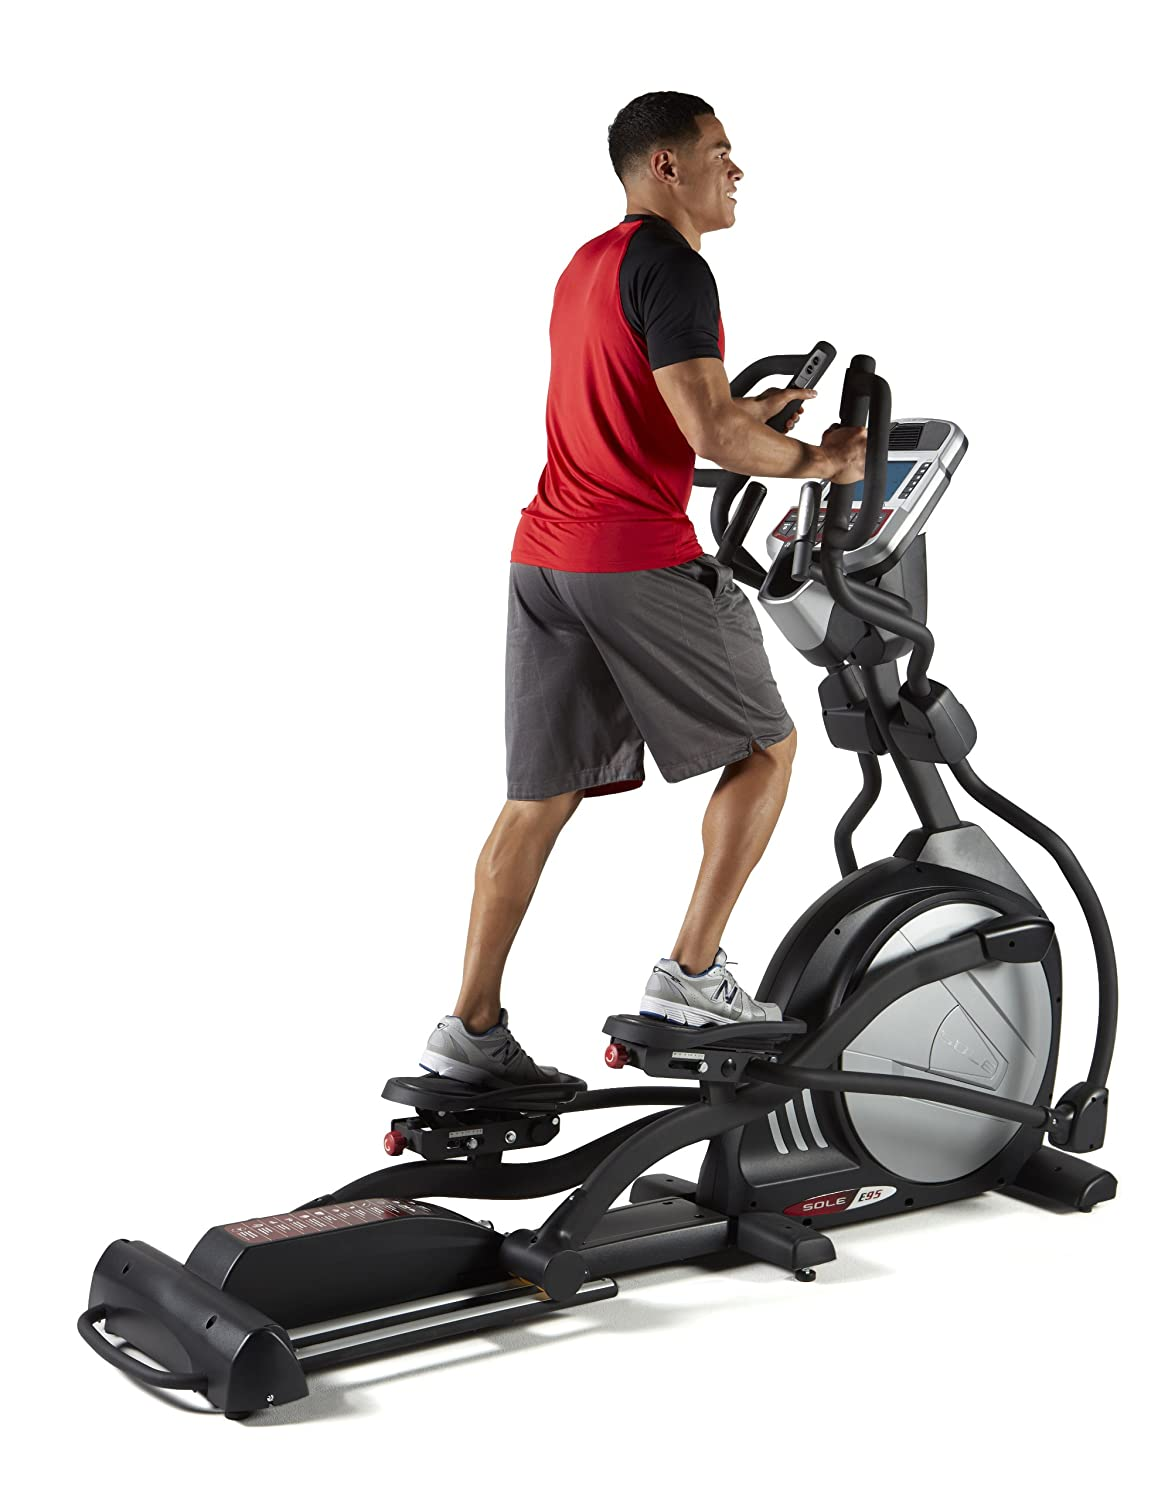 Elliptical Machines For Heavy People Up To 400 Lbs   For ...